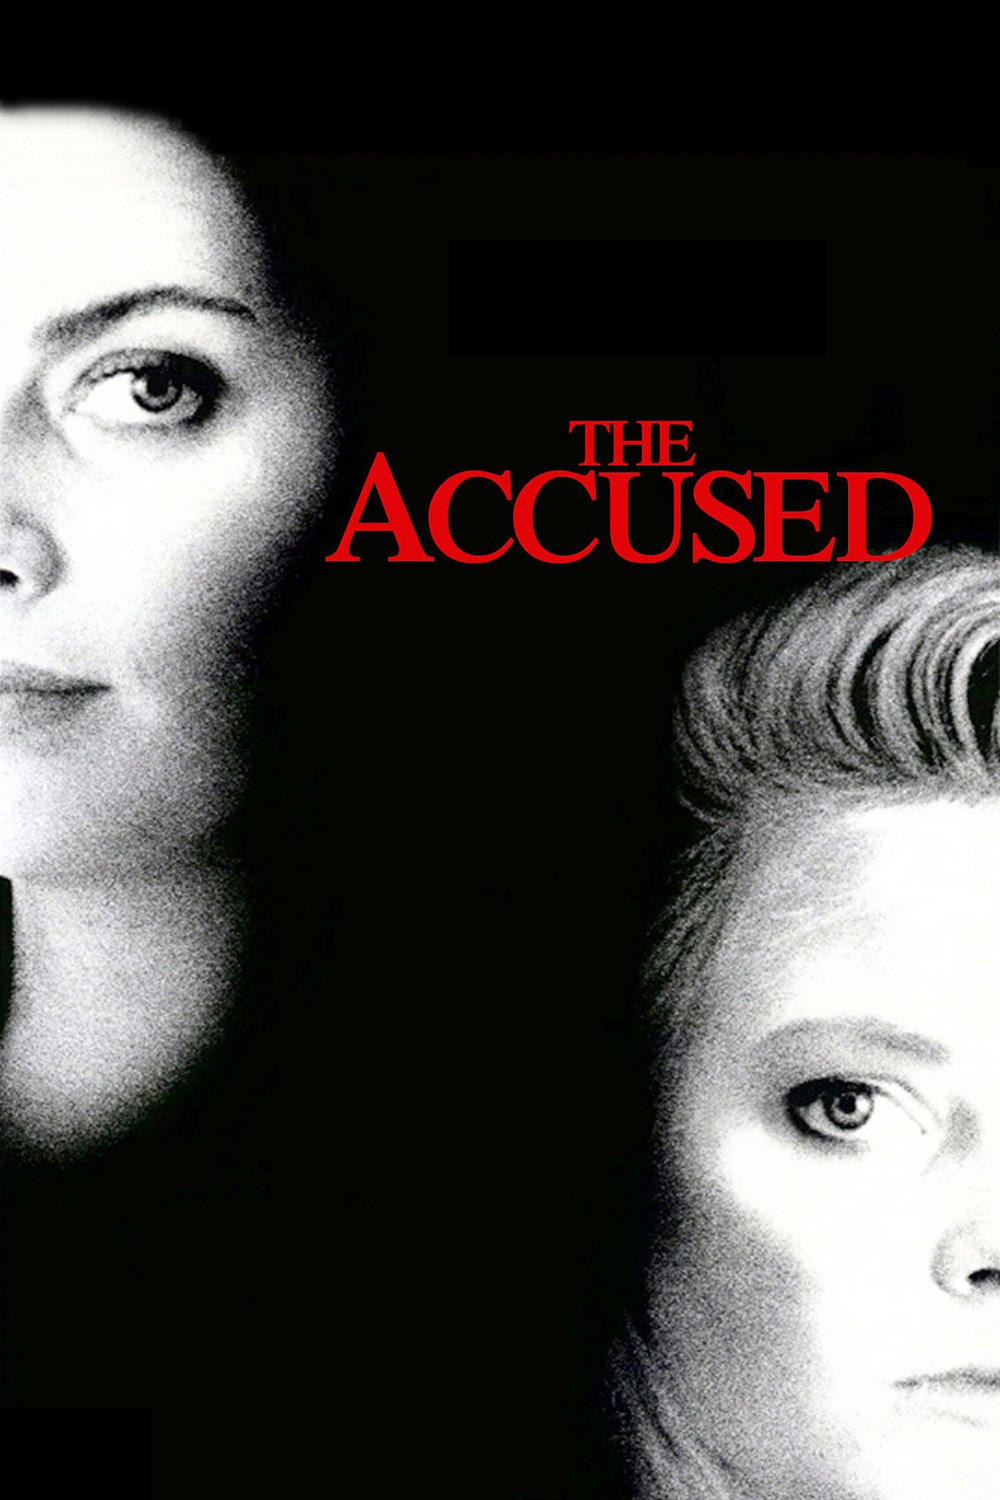 i eat sleep walk talk movies books the accused 1988 drama the accused 1988 drama